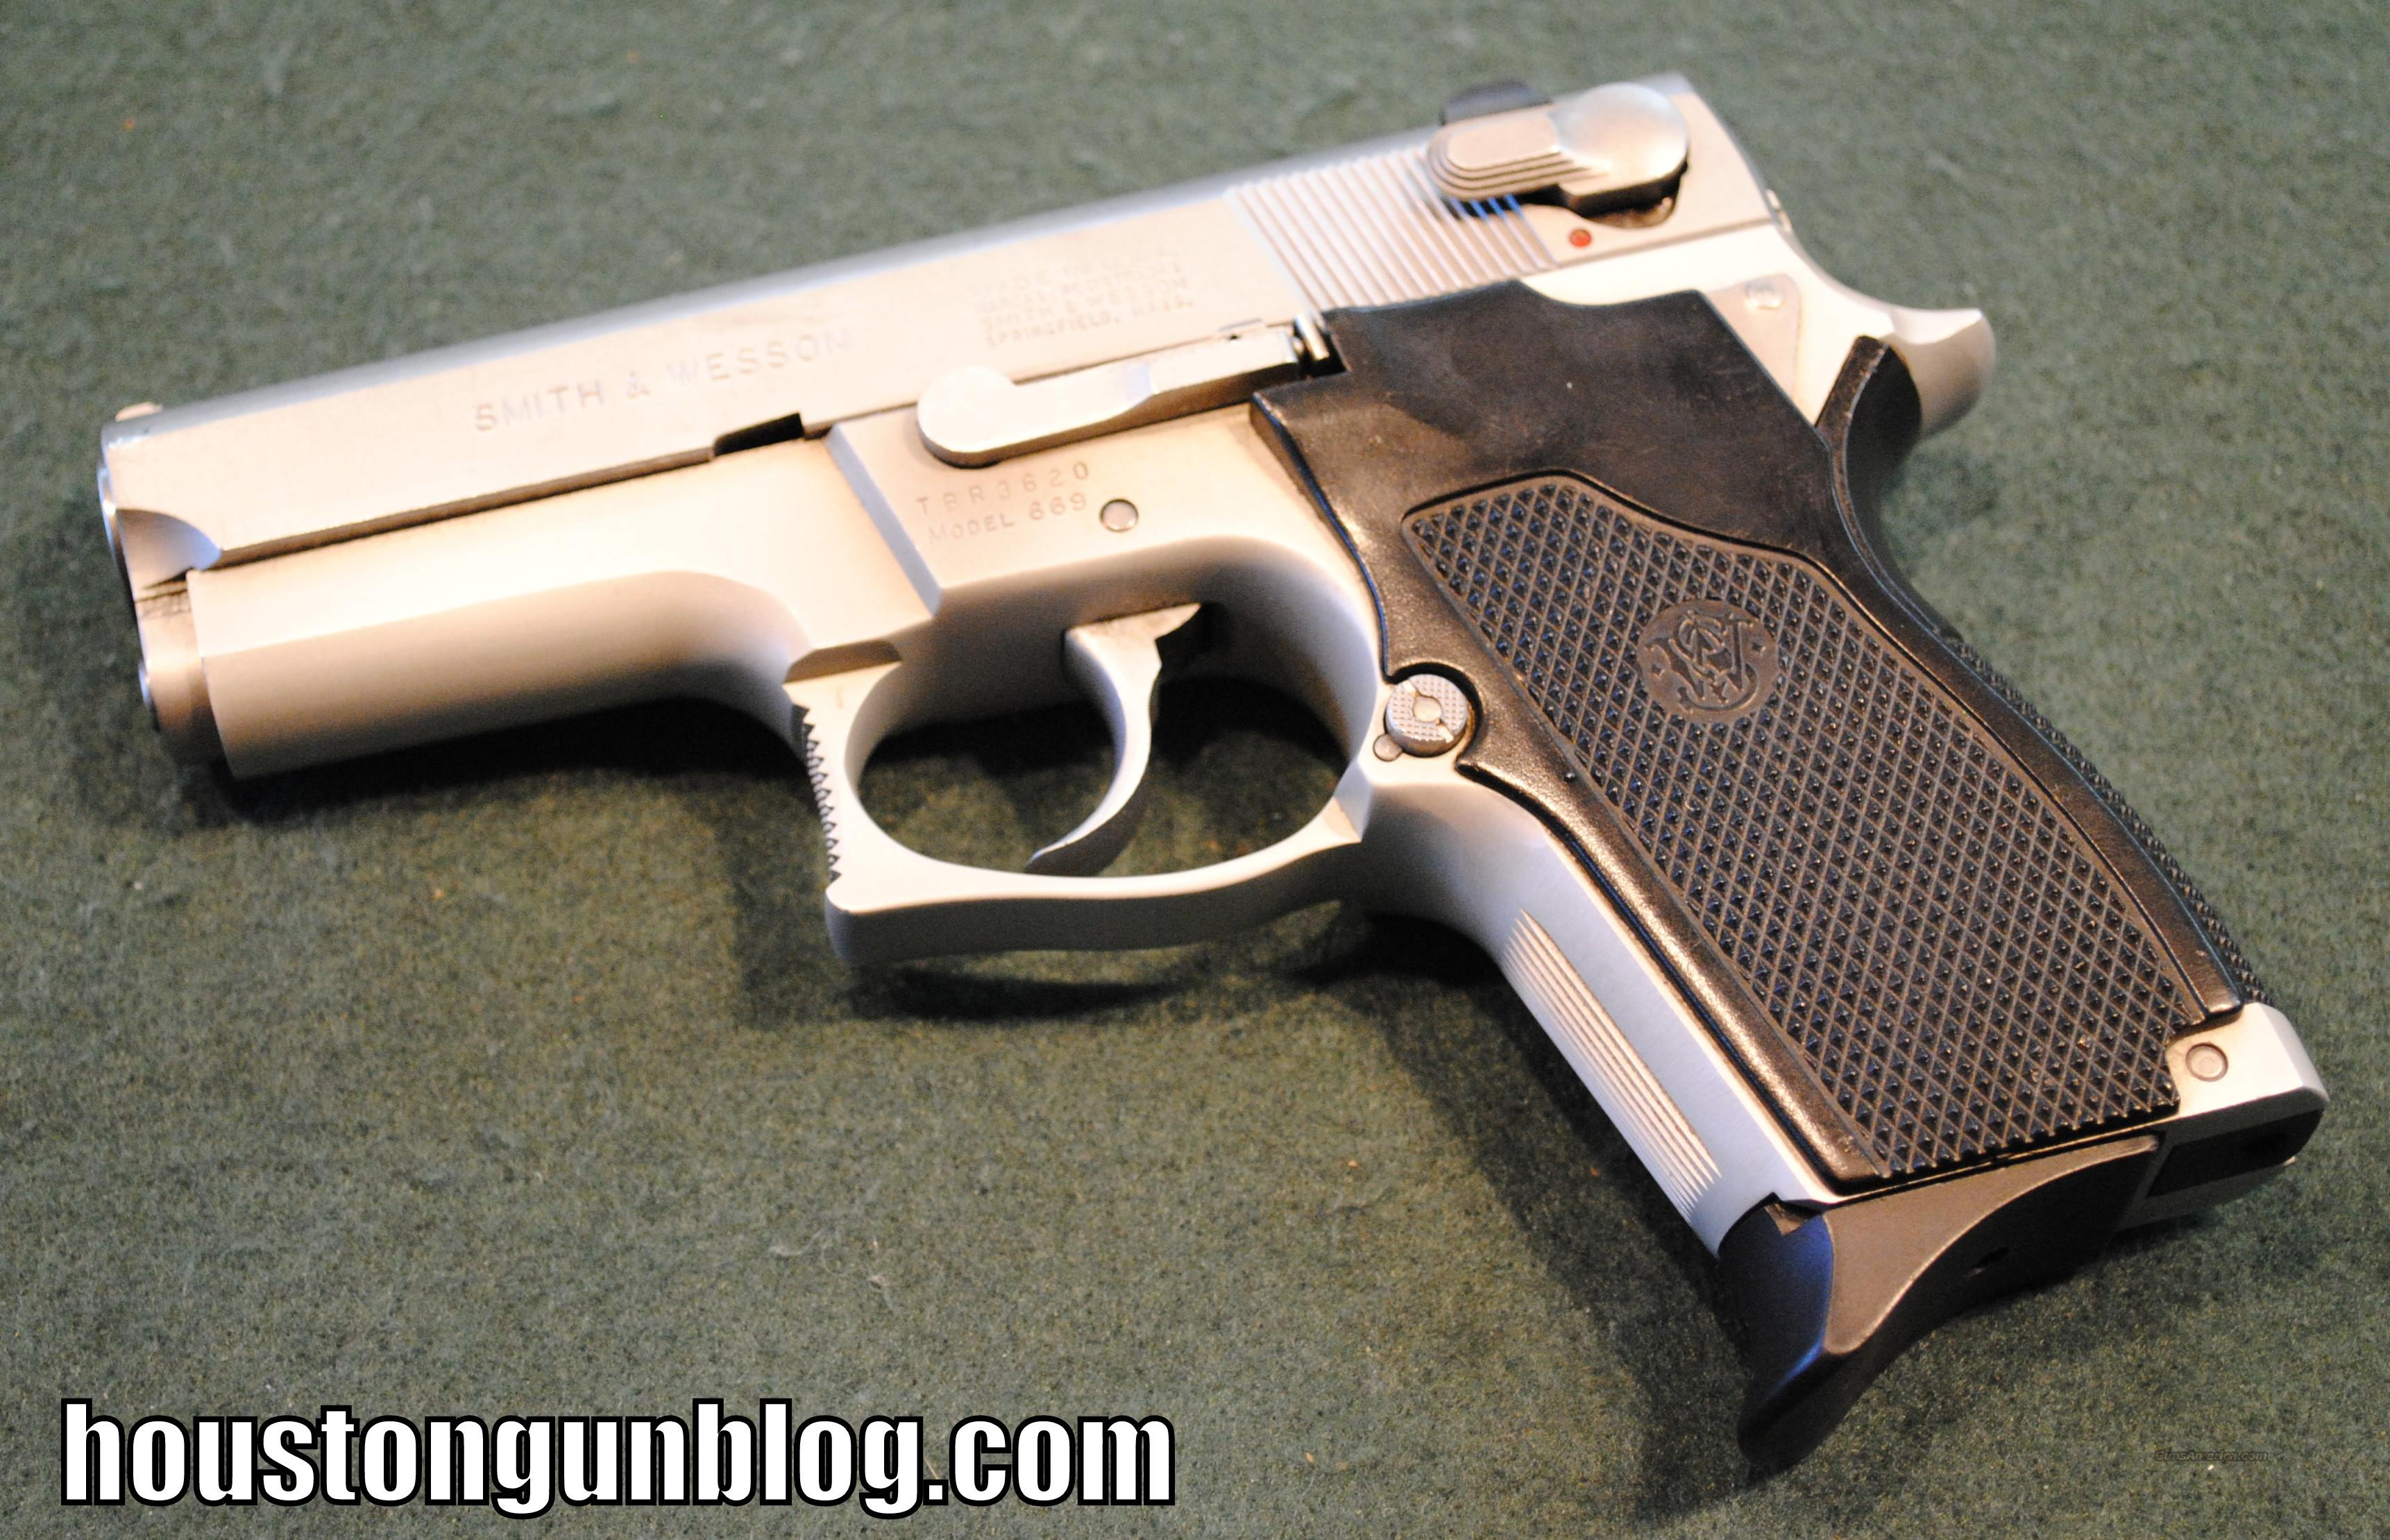 Smith and Wesson 669 DA/SA 9mm Pistol  Guns > Pistols > Smith & Wesson Pistols - Autos > Alloy Frame